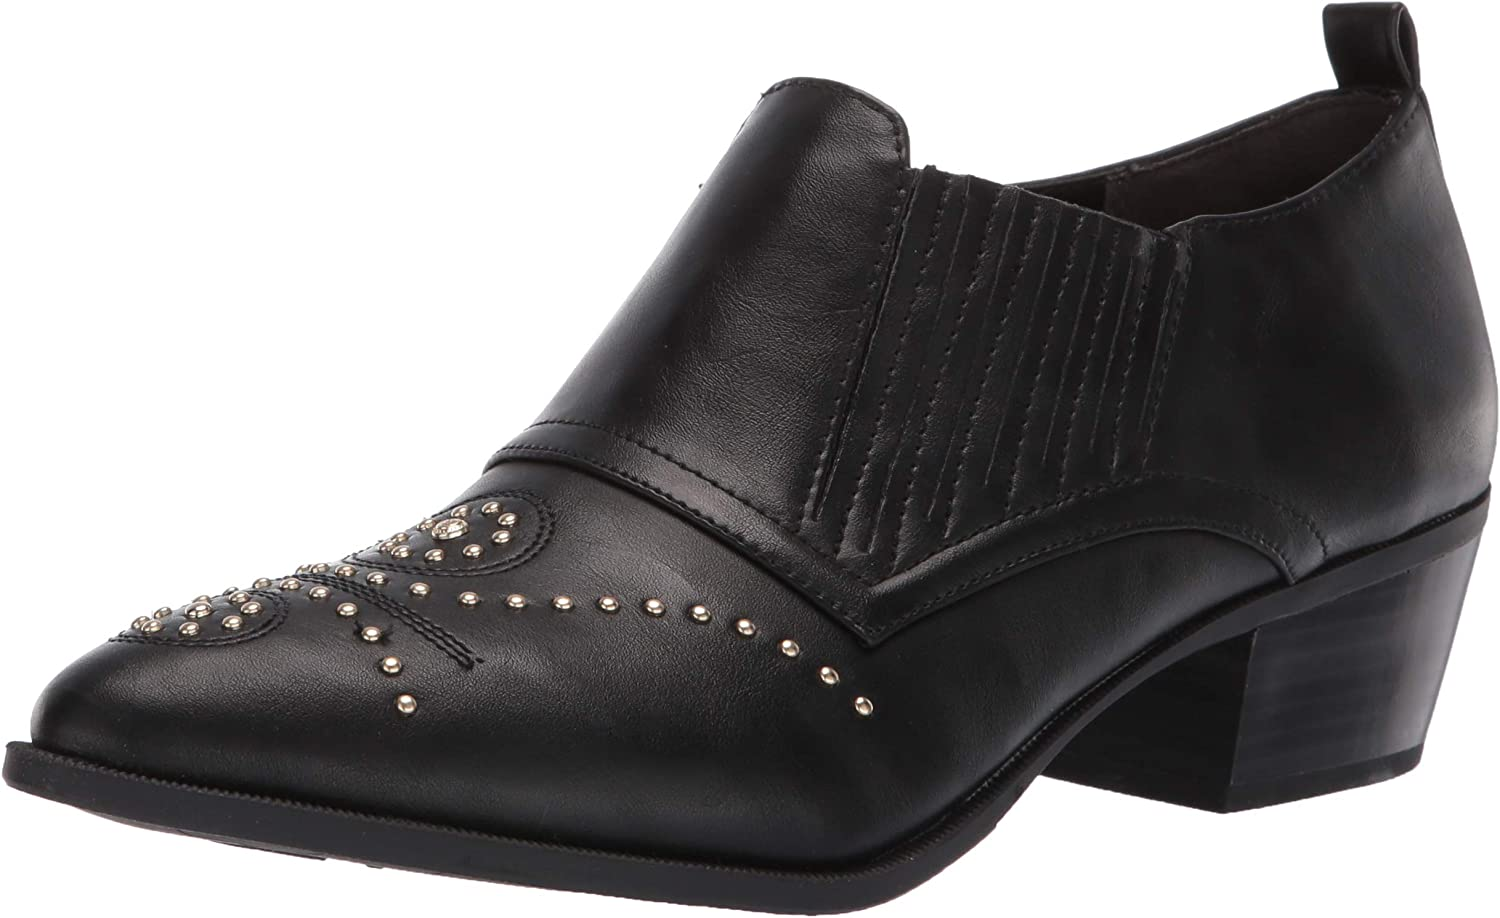 Circus by Sam Edelman Womens Helena Ankle Boot